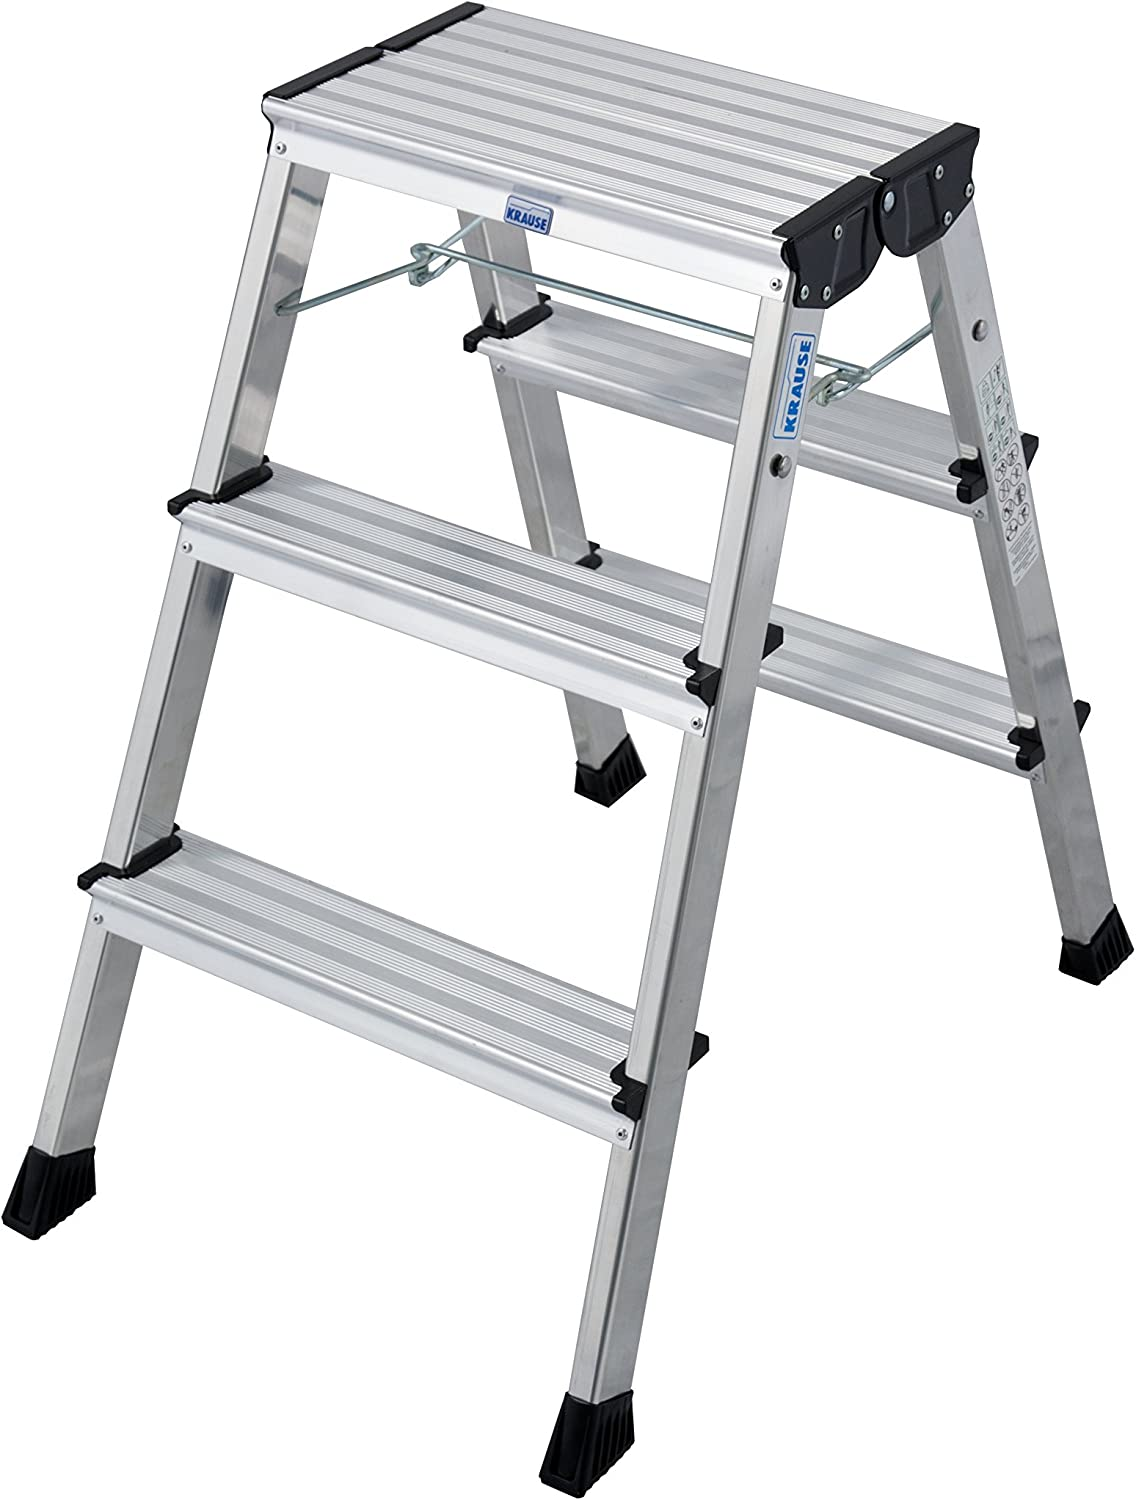 Krause 130068 Folding Steps 2 x 3 Steps Aluminium with Roll-Stop